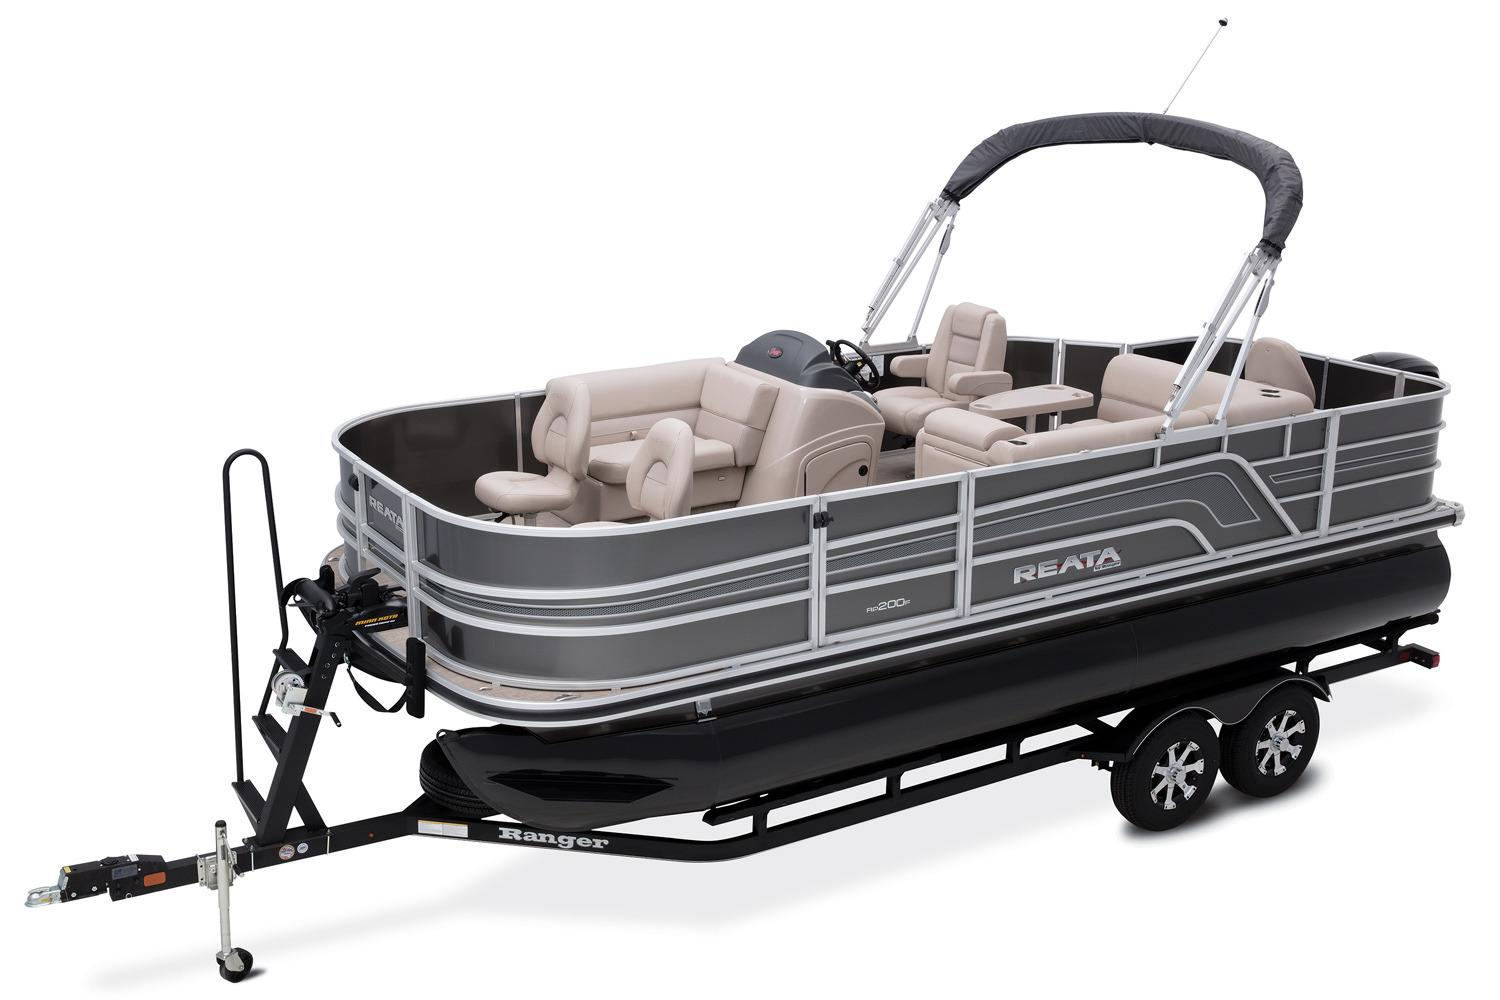 2018 Ranger Reata 200F in Eastland, Texas